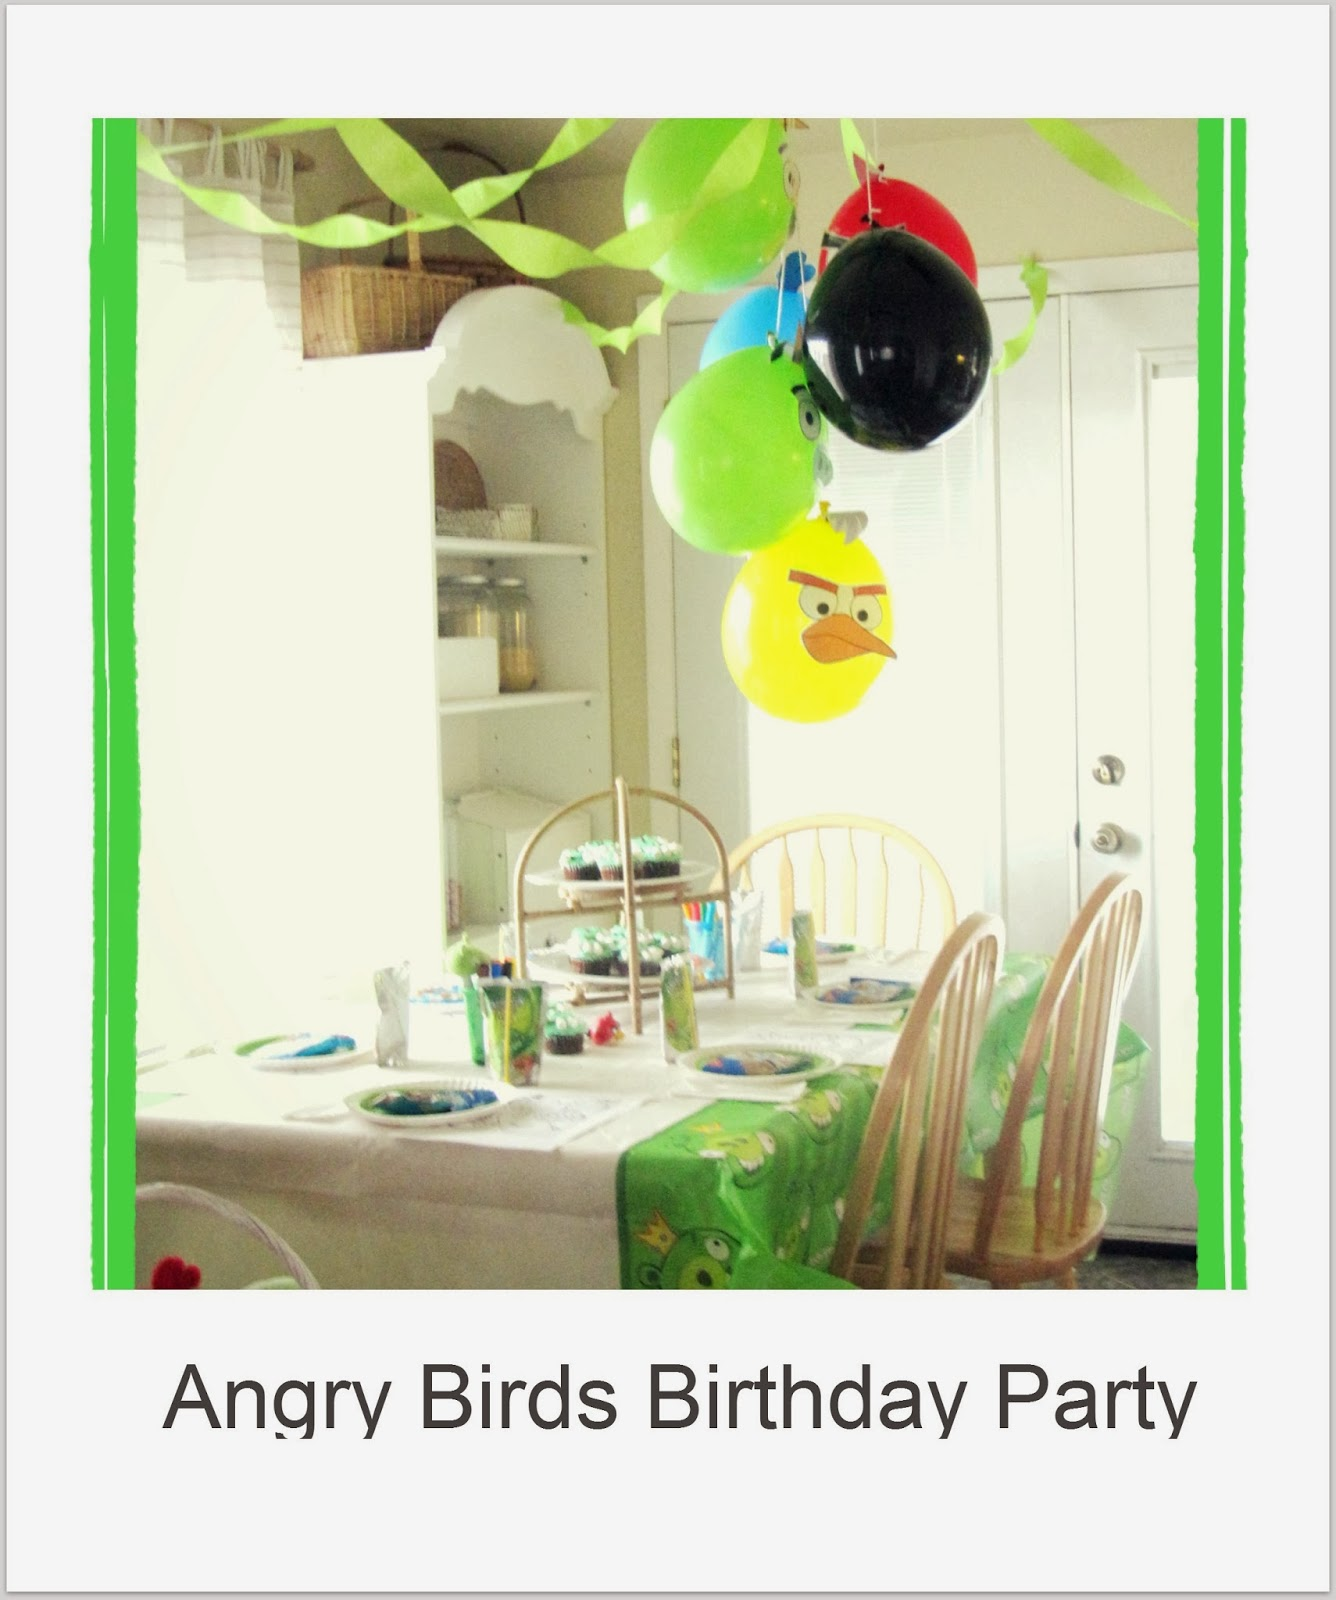 http://thewickerhouse.blogspot.com/2012/11/angry-birds-birthday-party.html